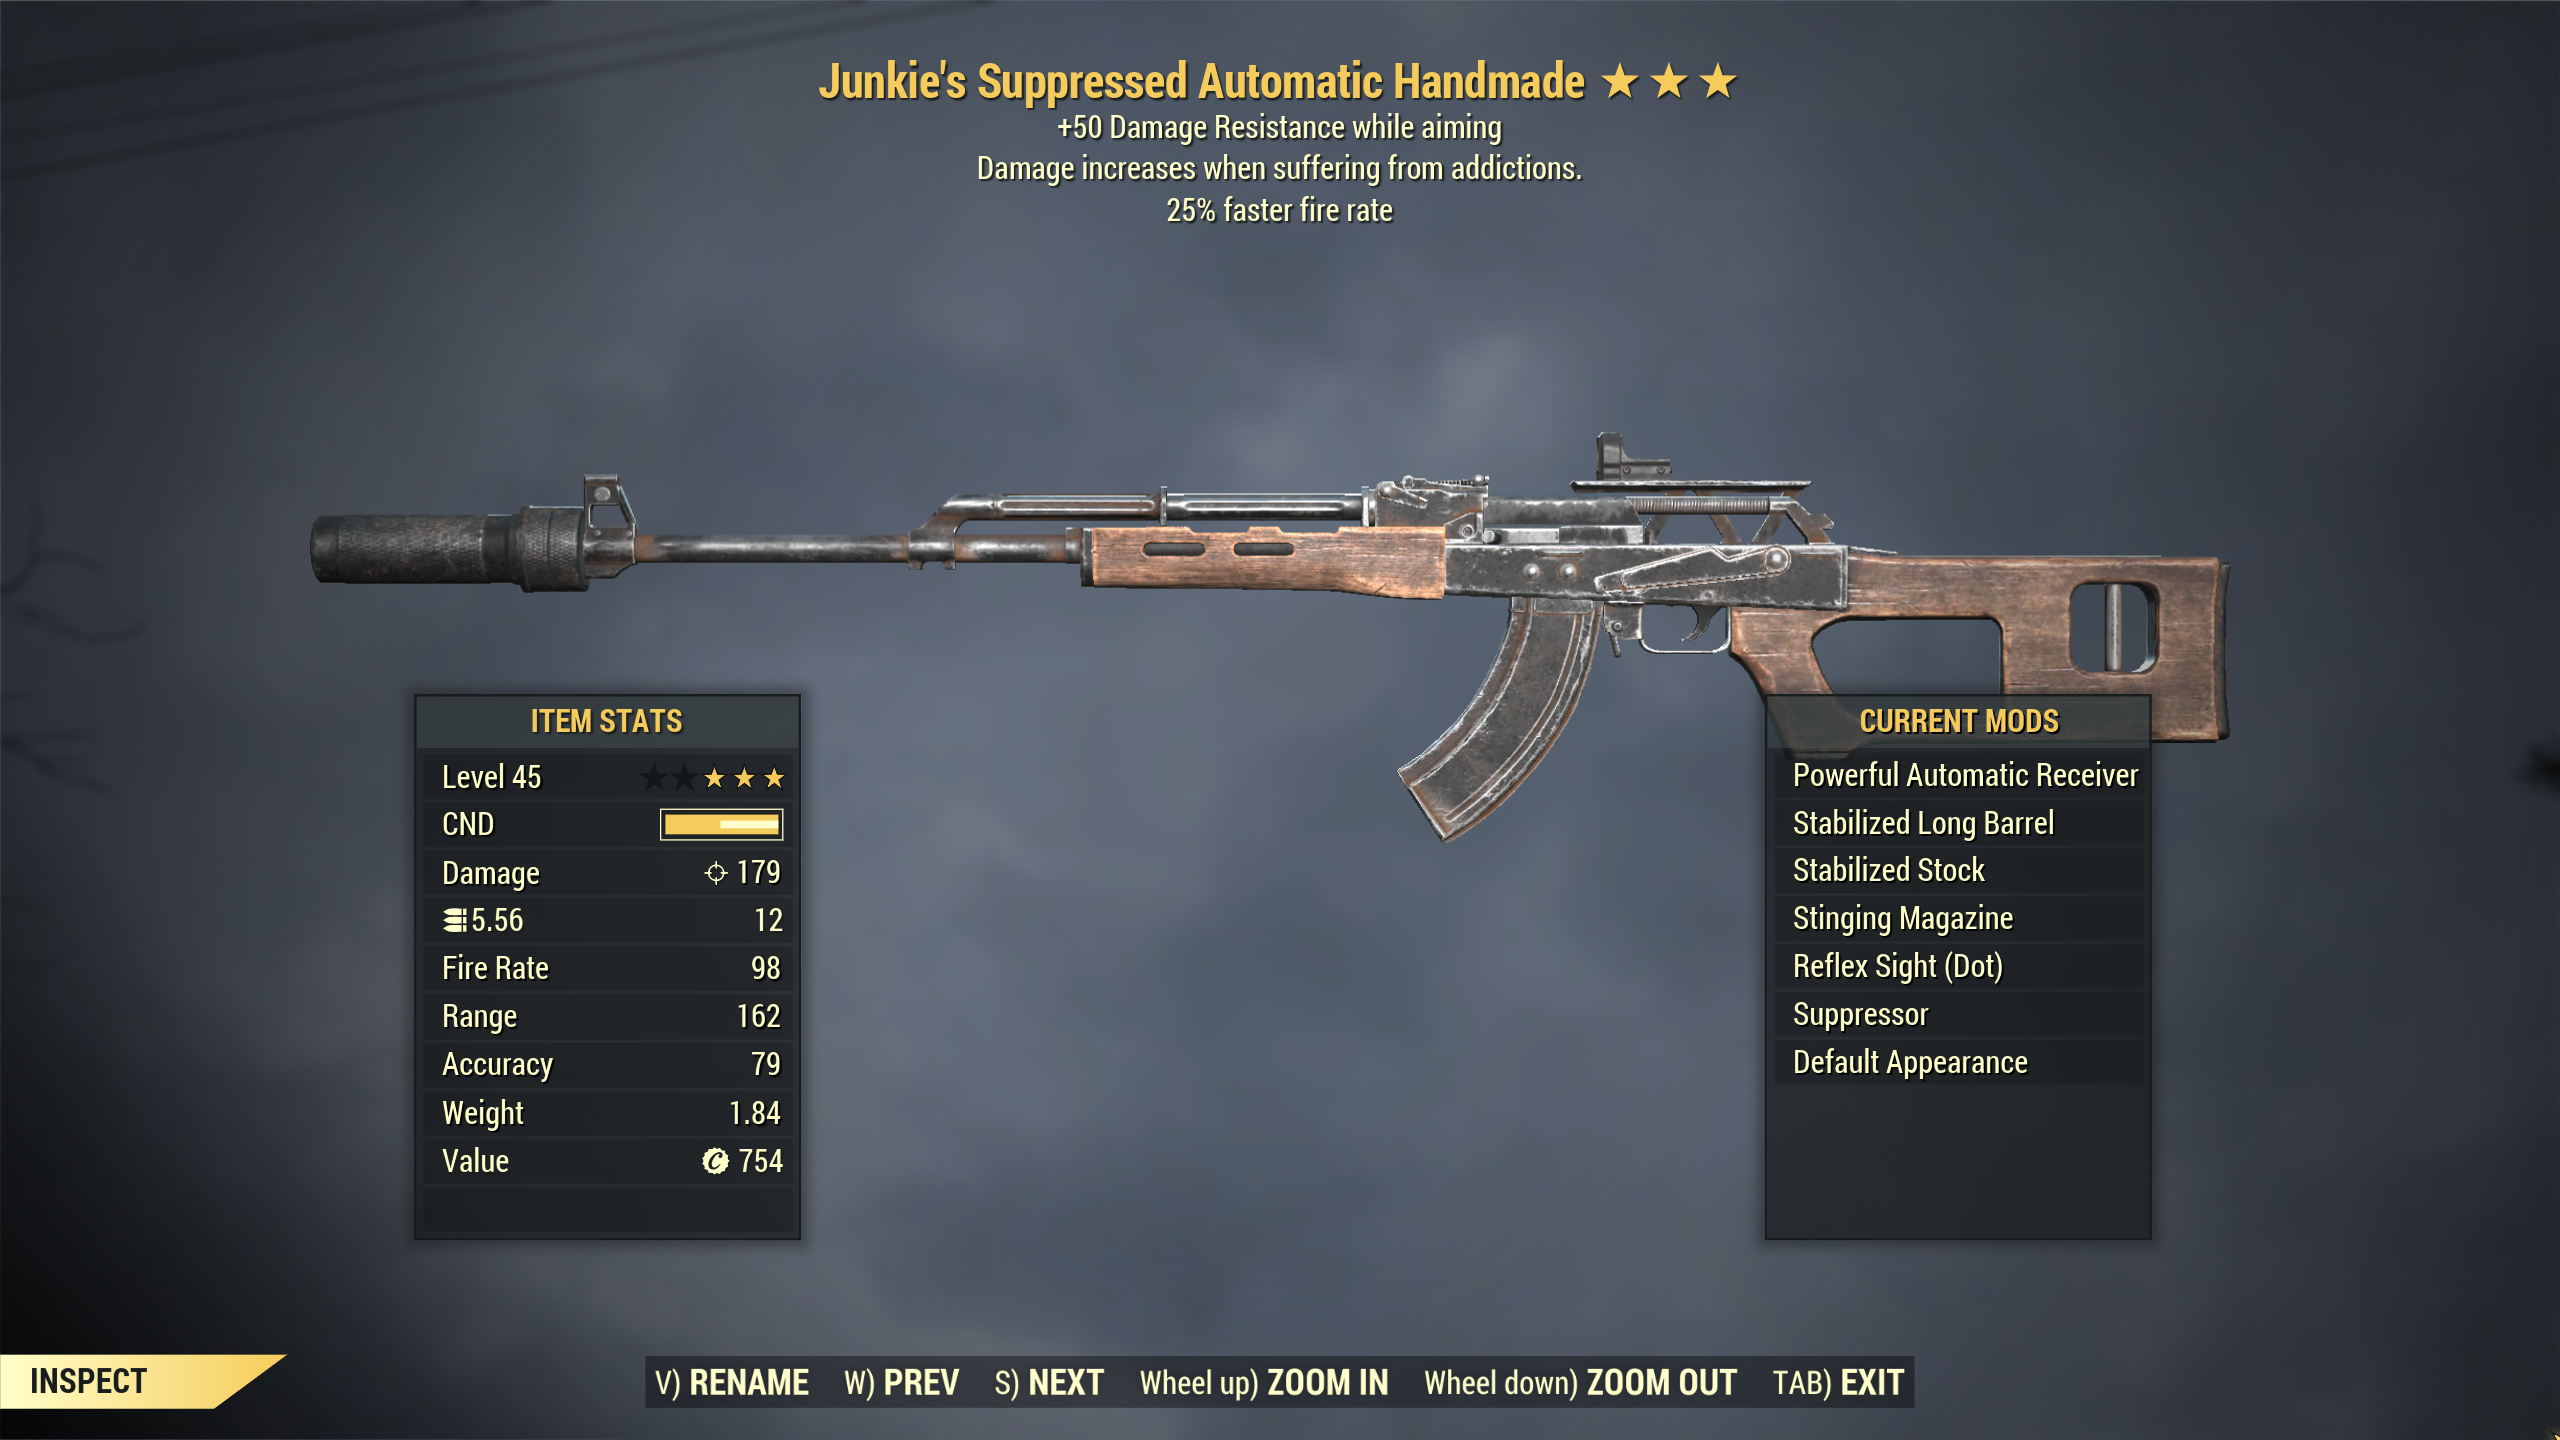 ★★★ Junkies Handmade[25% Faster Fire][+50 Damage Resistance] | FAST DELIVERY |